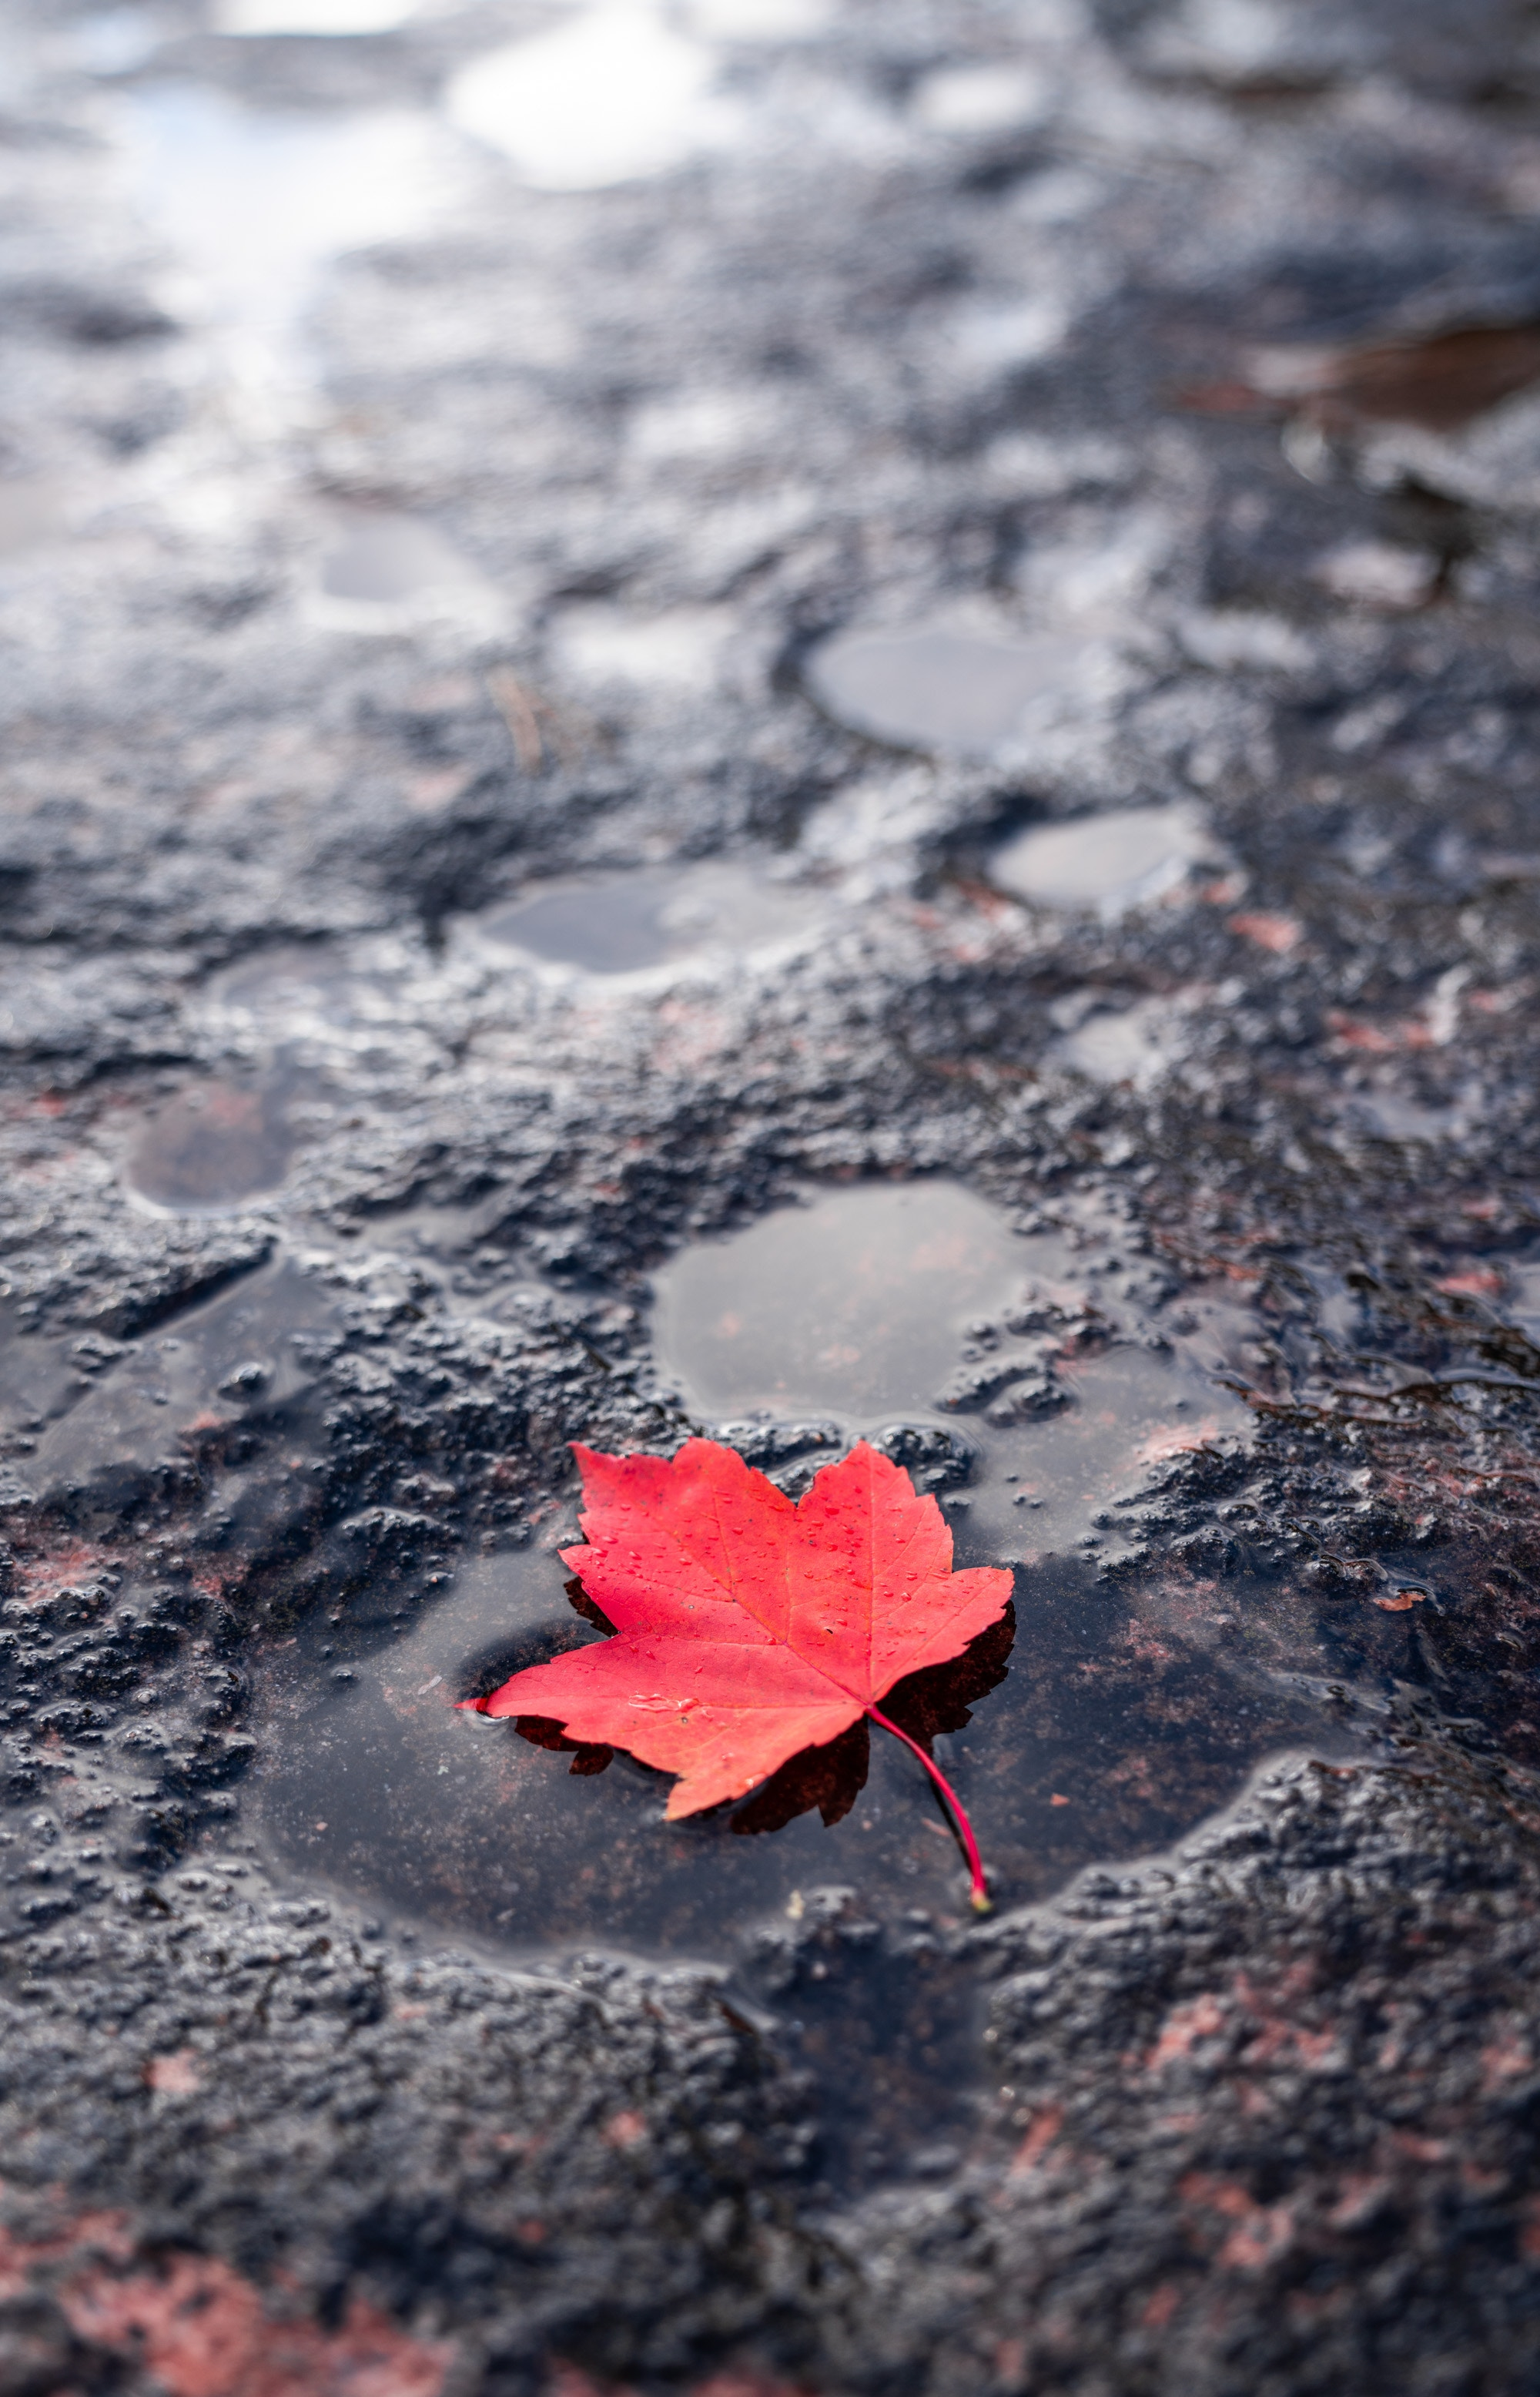 87389 download wallpaper Macro, Sheet, Leaf, Puddle, Maple, Wet, After The Rain screensavers and pictures for free